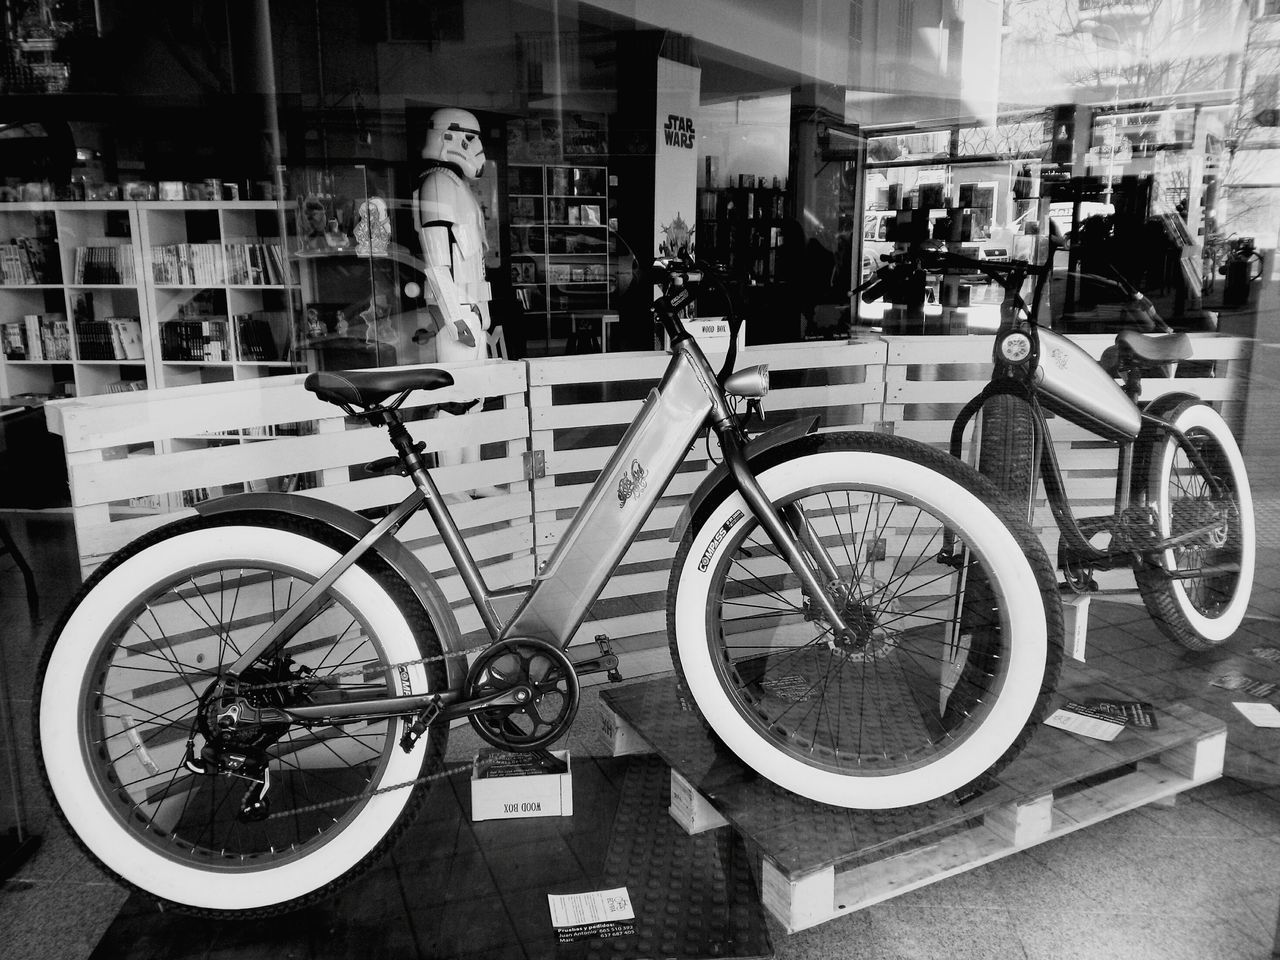 Fat Bikes Fat Bike Bycicles Bycicle Shop Star Wars Imperial Guard Comic Shop Nice Shop Shop Window Well Done Shop Window Transportation Bicycle Mode Of Transport City City Life No People Blackandwhitephotography Day Blackandwhite Black And White Black & White Blackandwhite Photography Black And White Photography Blah